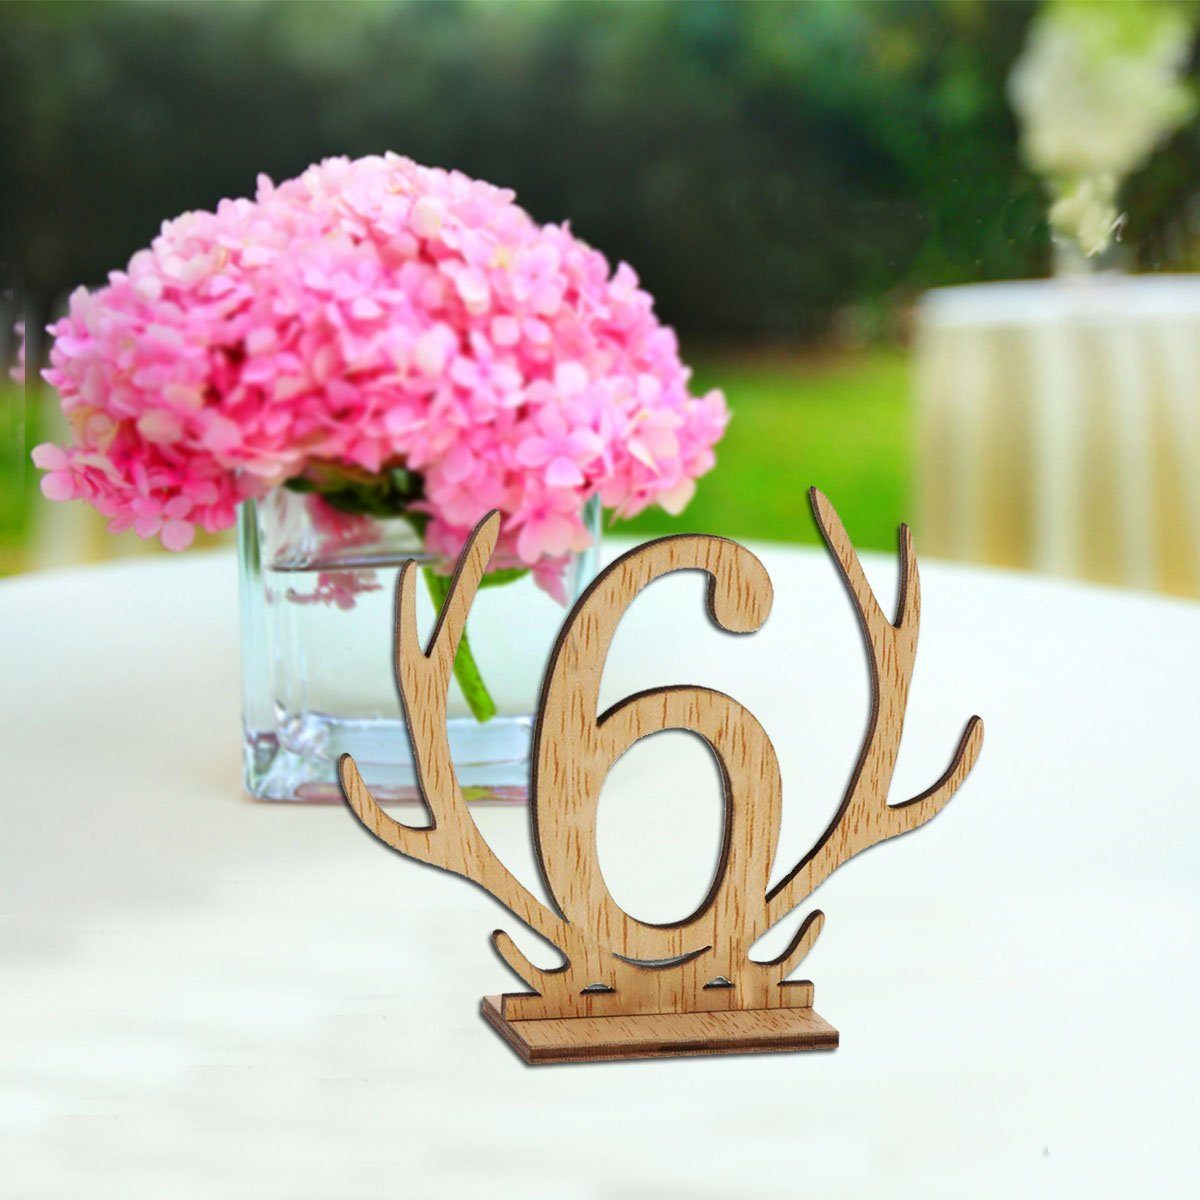 Wellinc Table Numbers 20 Pack (Number 1-20) Wedding Wood Table Numbers Unique Design Party Table Cards for Wedding Events and Banquet by Wellinc (Image #3)